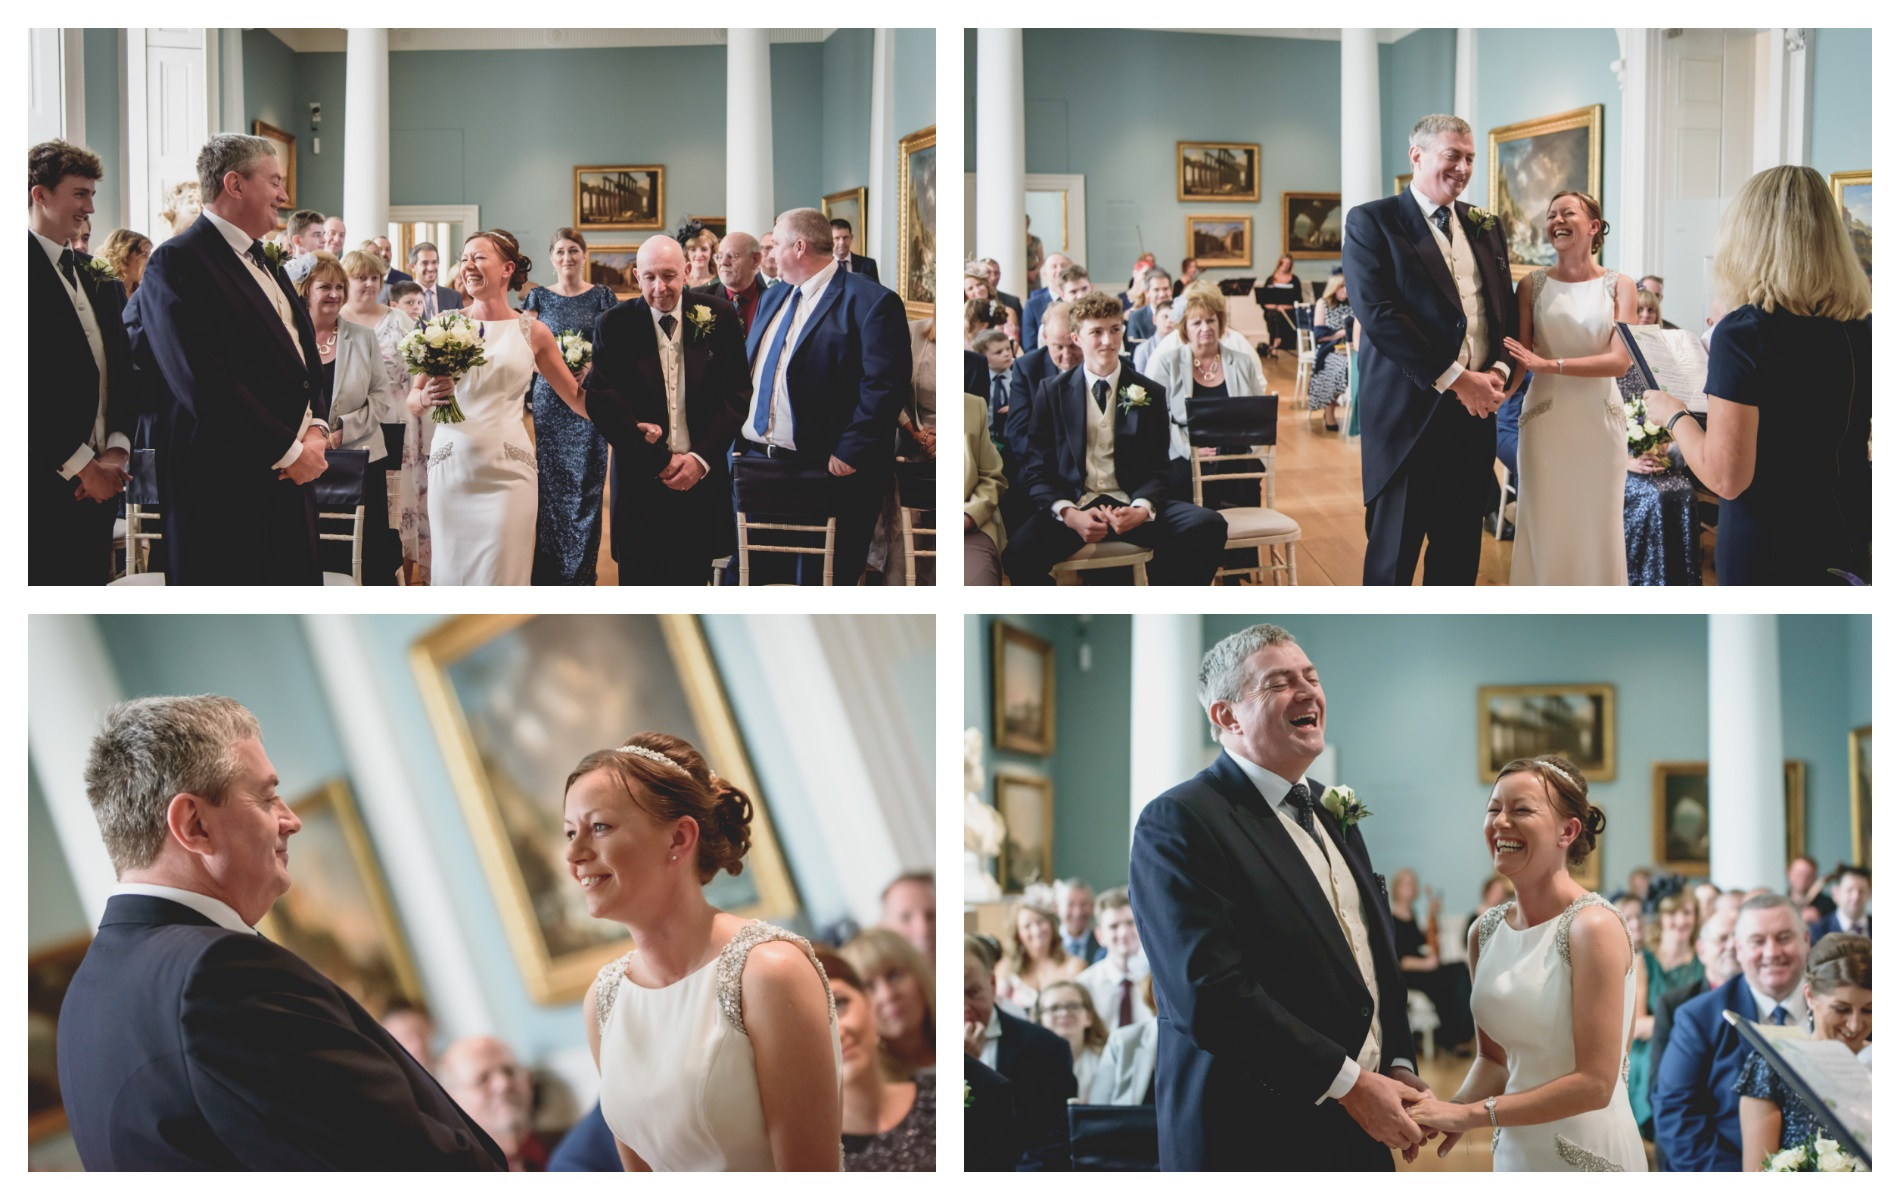 Compton Verney Wedding Photography by Chris Fossey Photography Claire 4